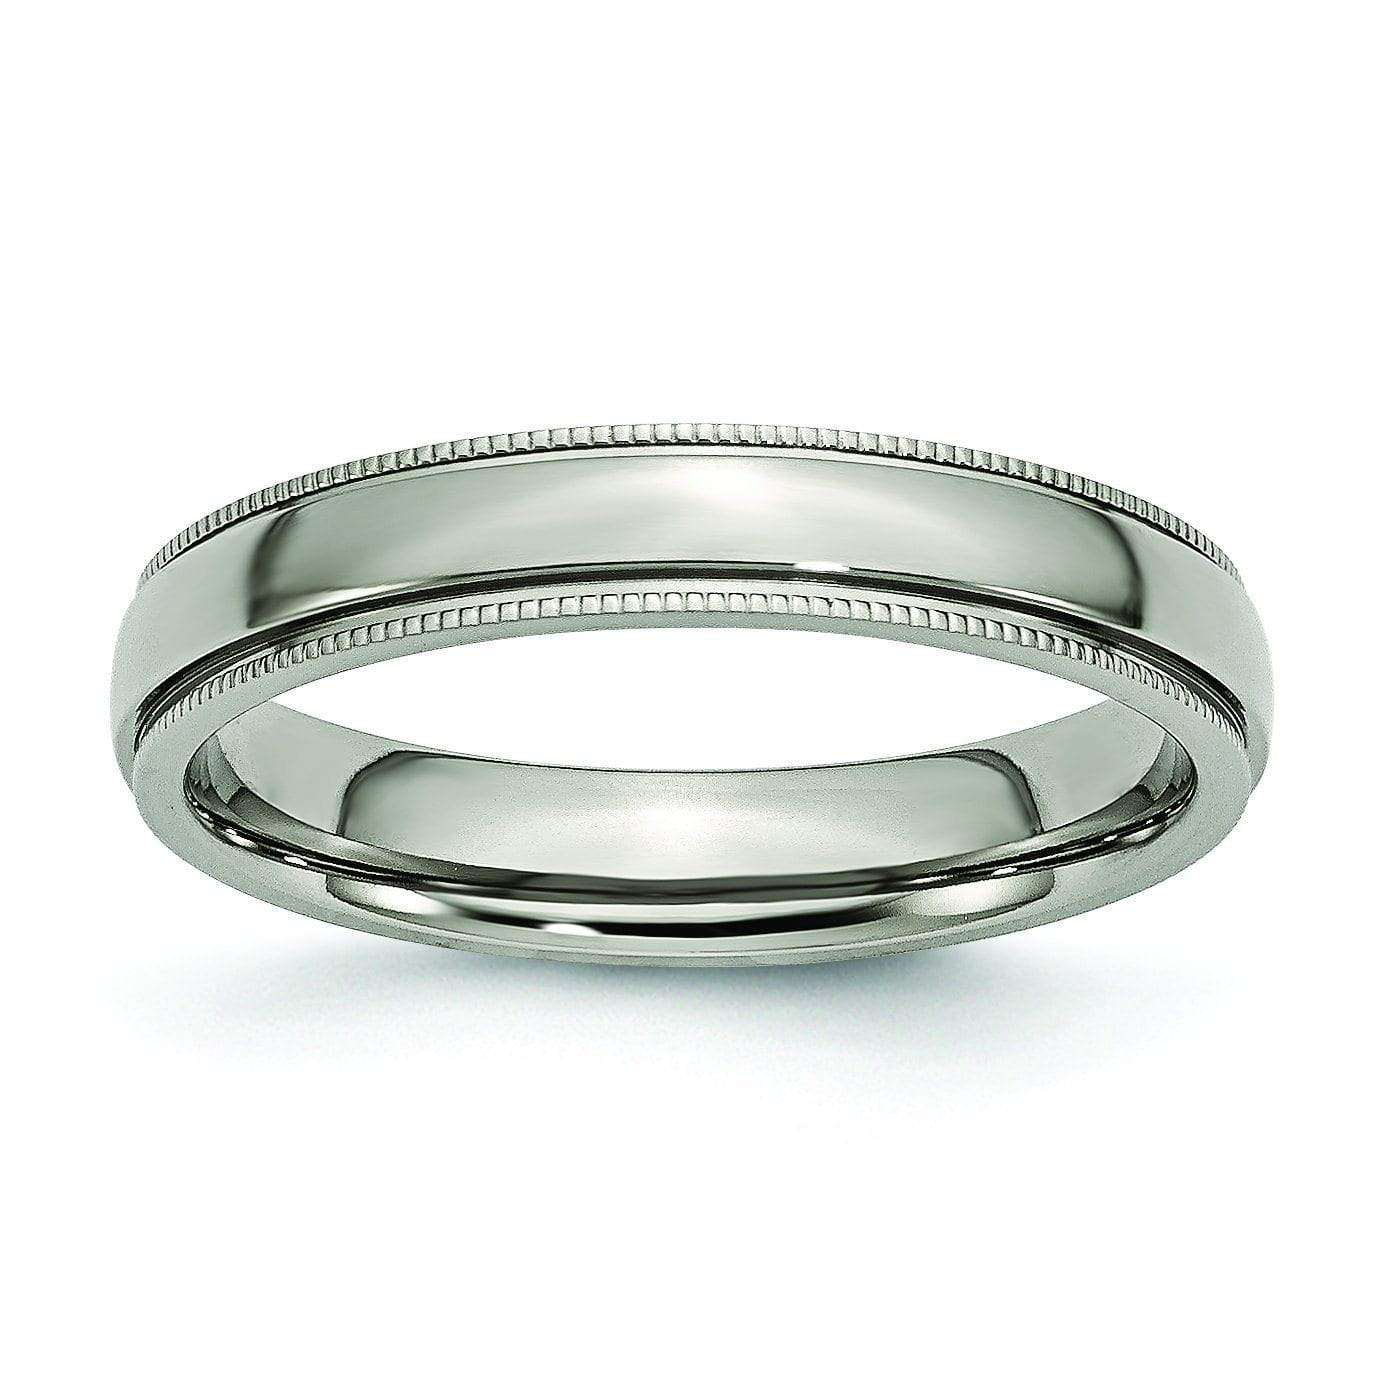 4mm Titanium Ring for Women Titanium Wedding Rings deBebians